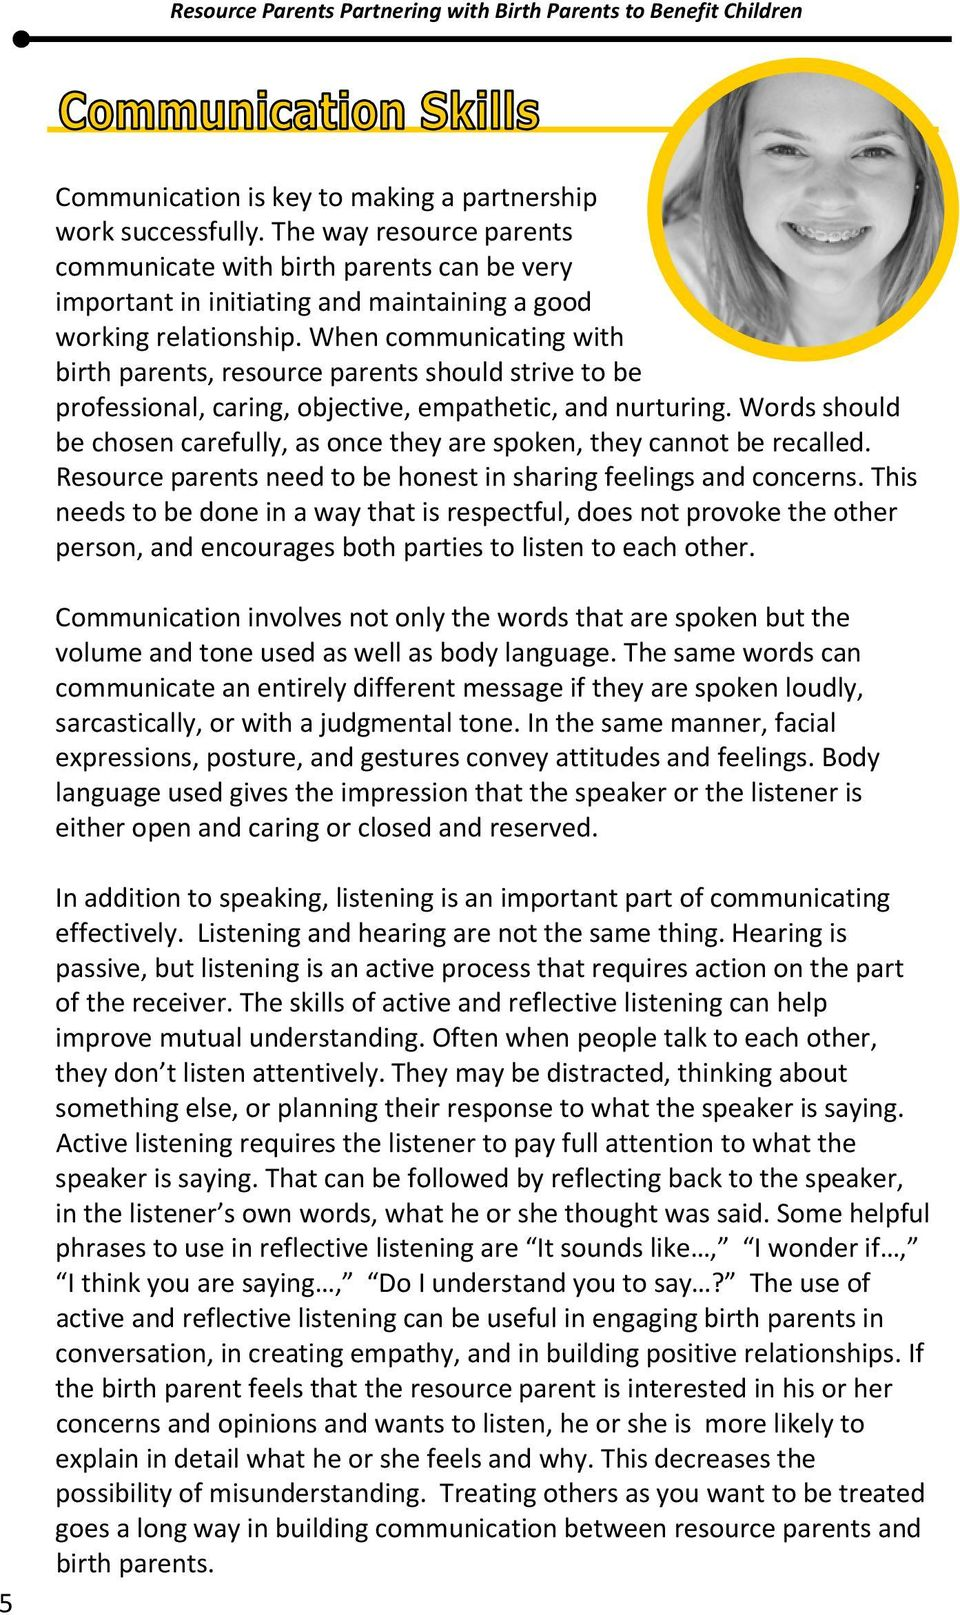 Words should be chosen carefully, as once they are spoken, they cannot be recalled. Resource parents need to be honest in sharing feelings and concerns.